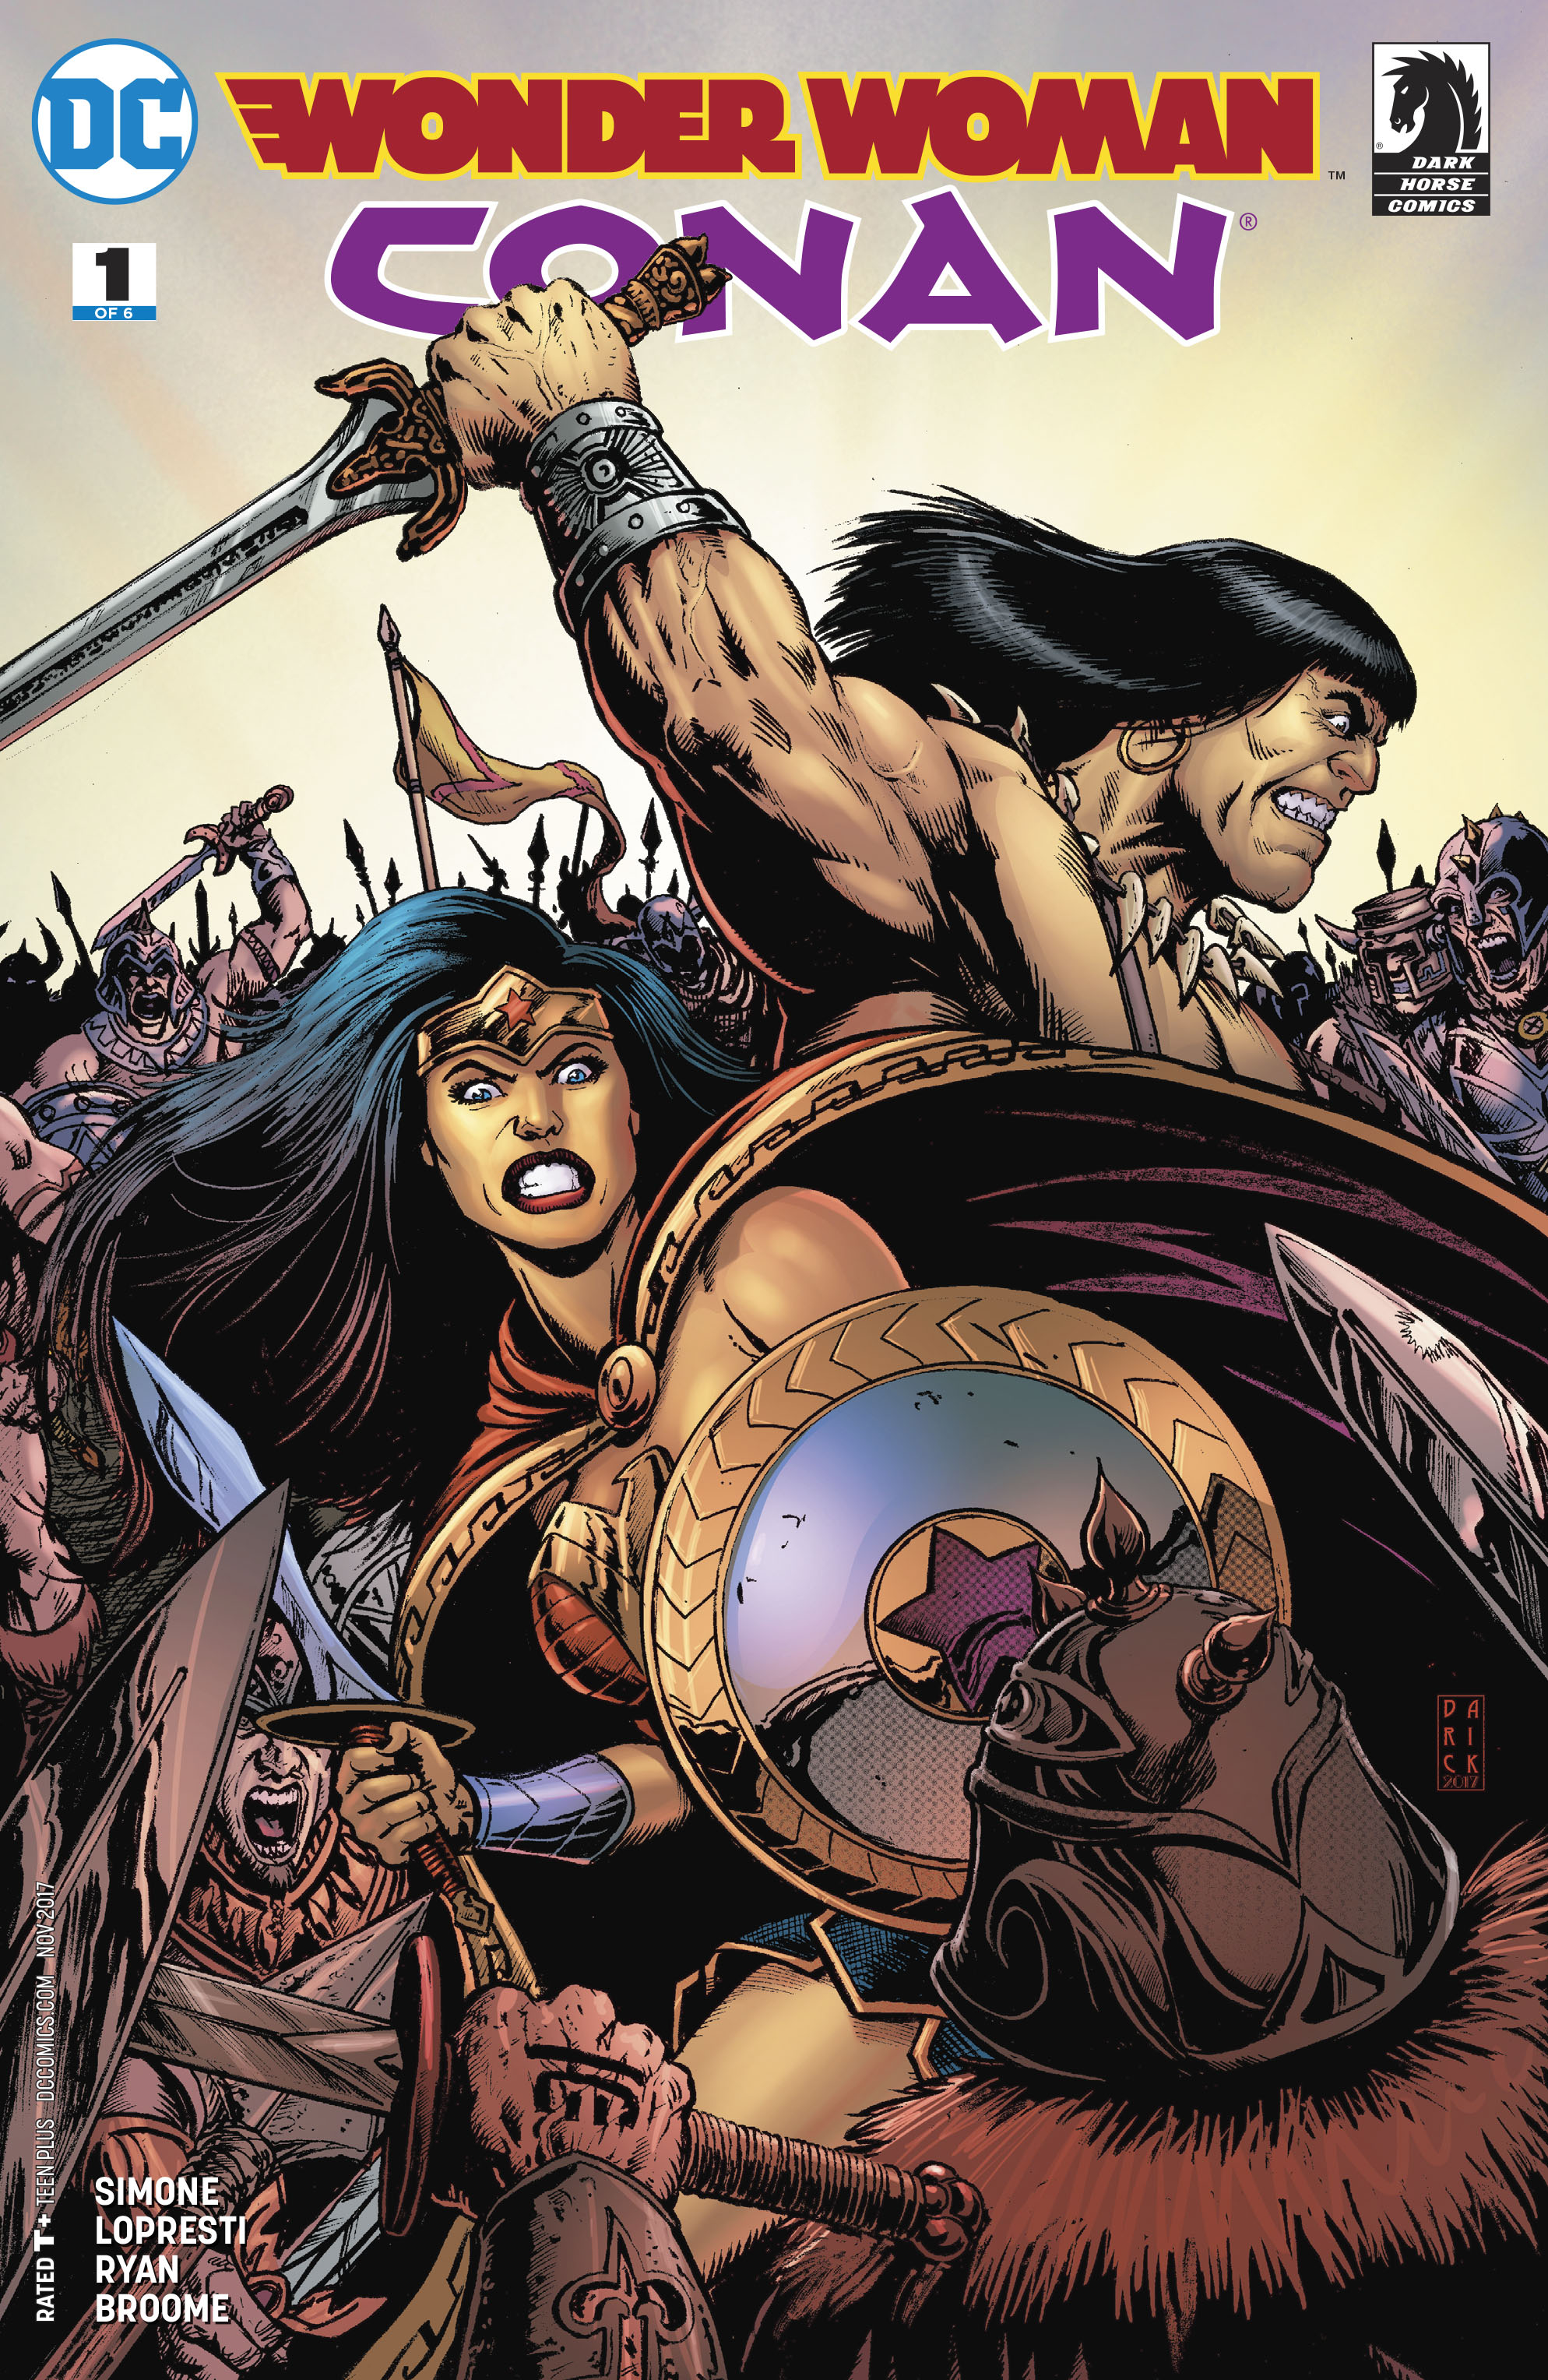 WONDER WOMAN CONAN #1 (OF 6)